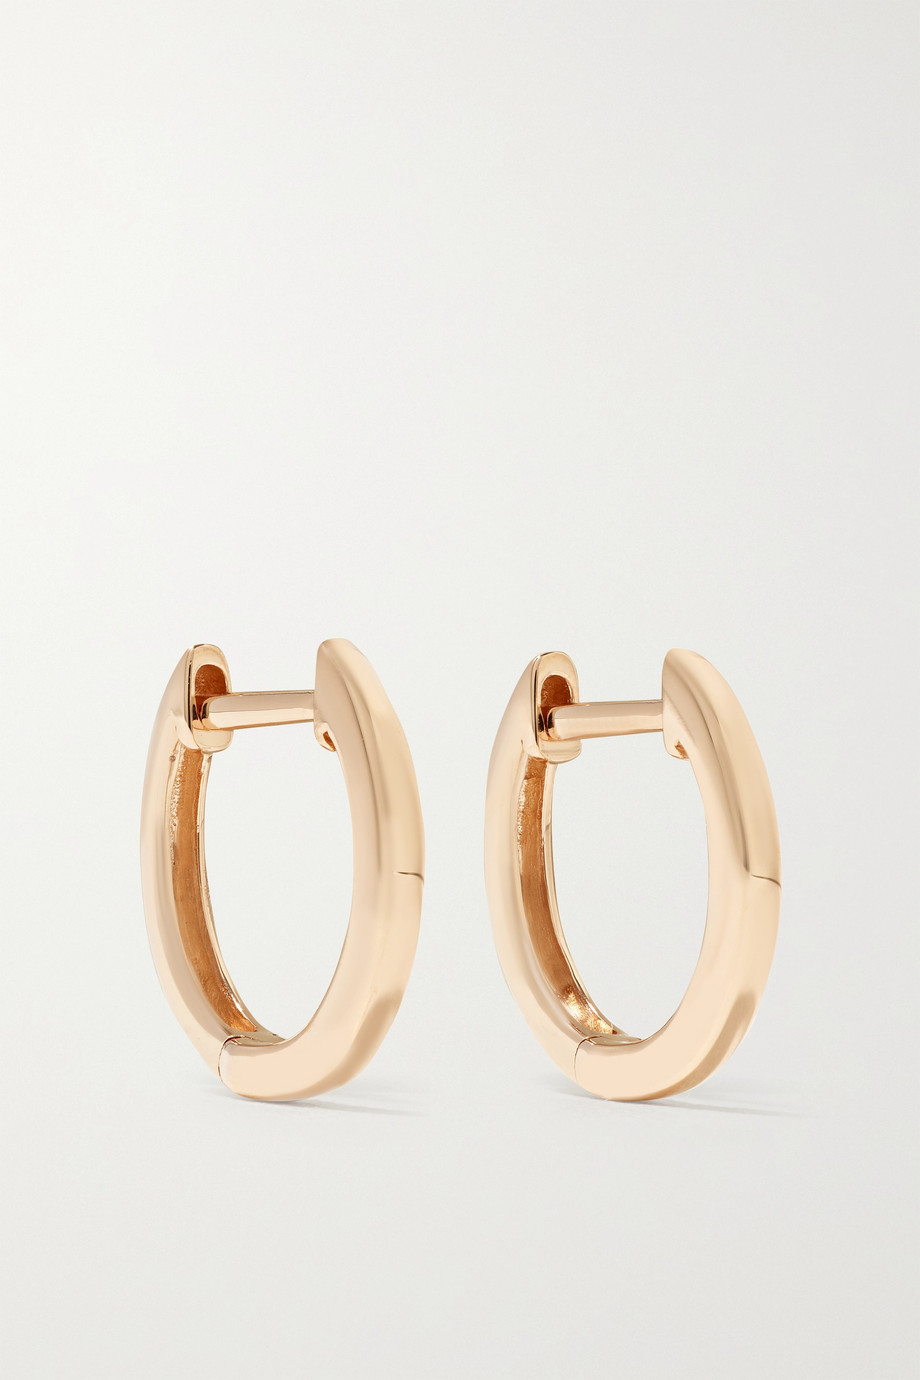 ANITA KO Huggies 18-karat rose gold hoop earrings